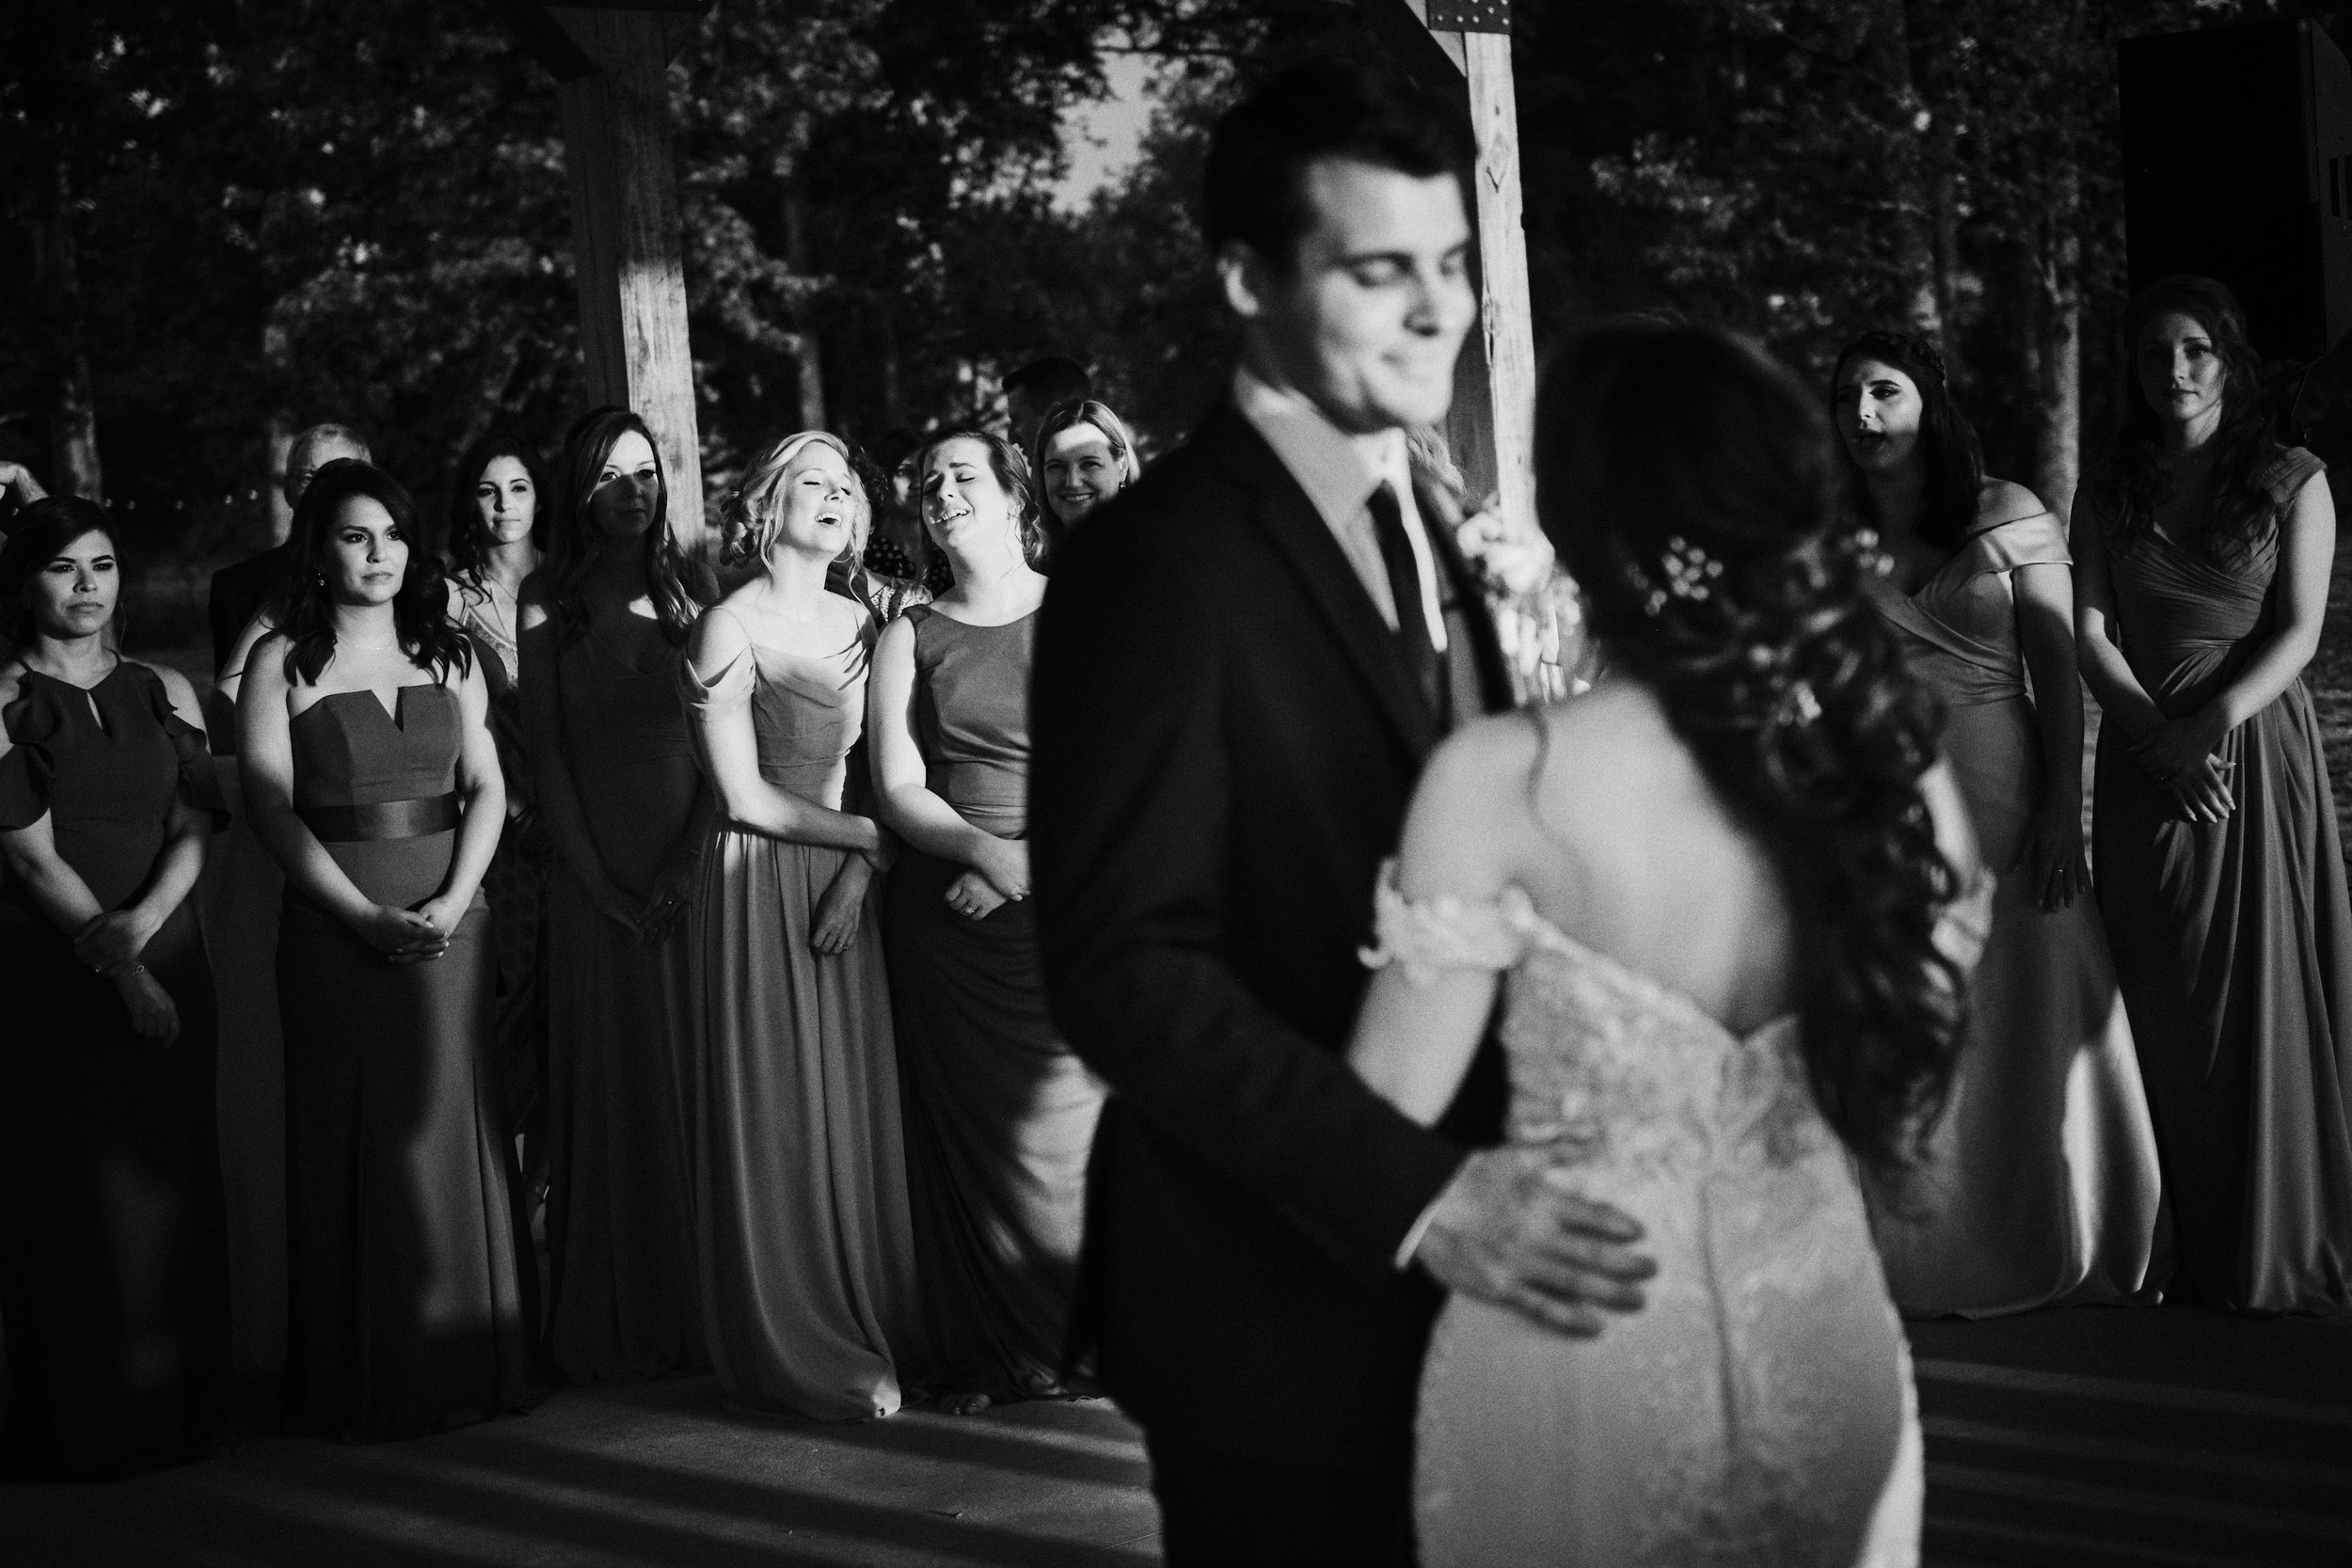 Singing along with first dance